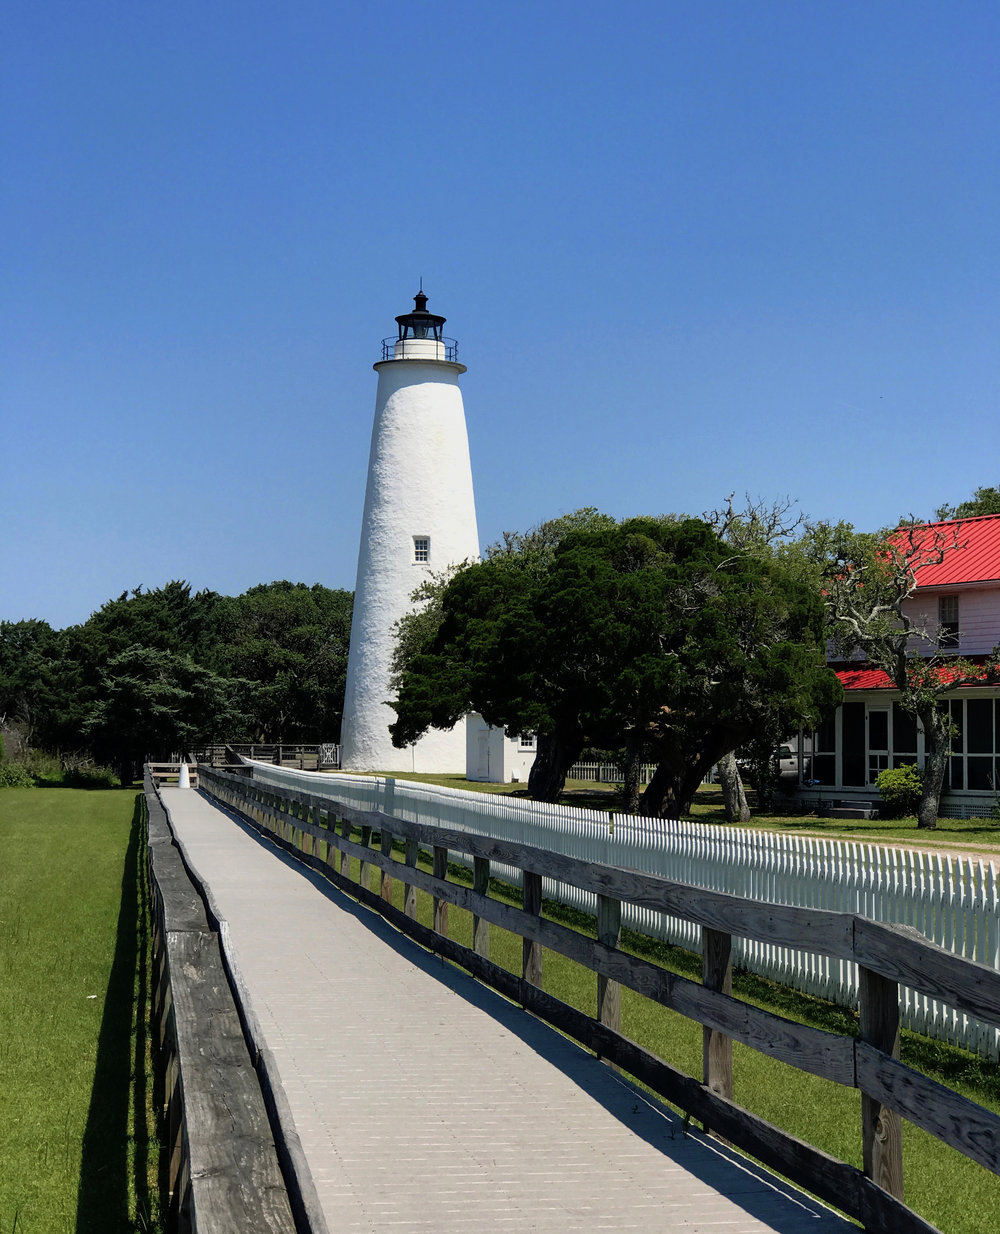 The much smaller Ocracoke Island Lighthouse – the second oldest operating lighthouse in the country